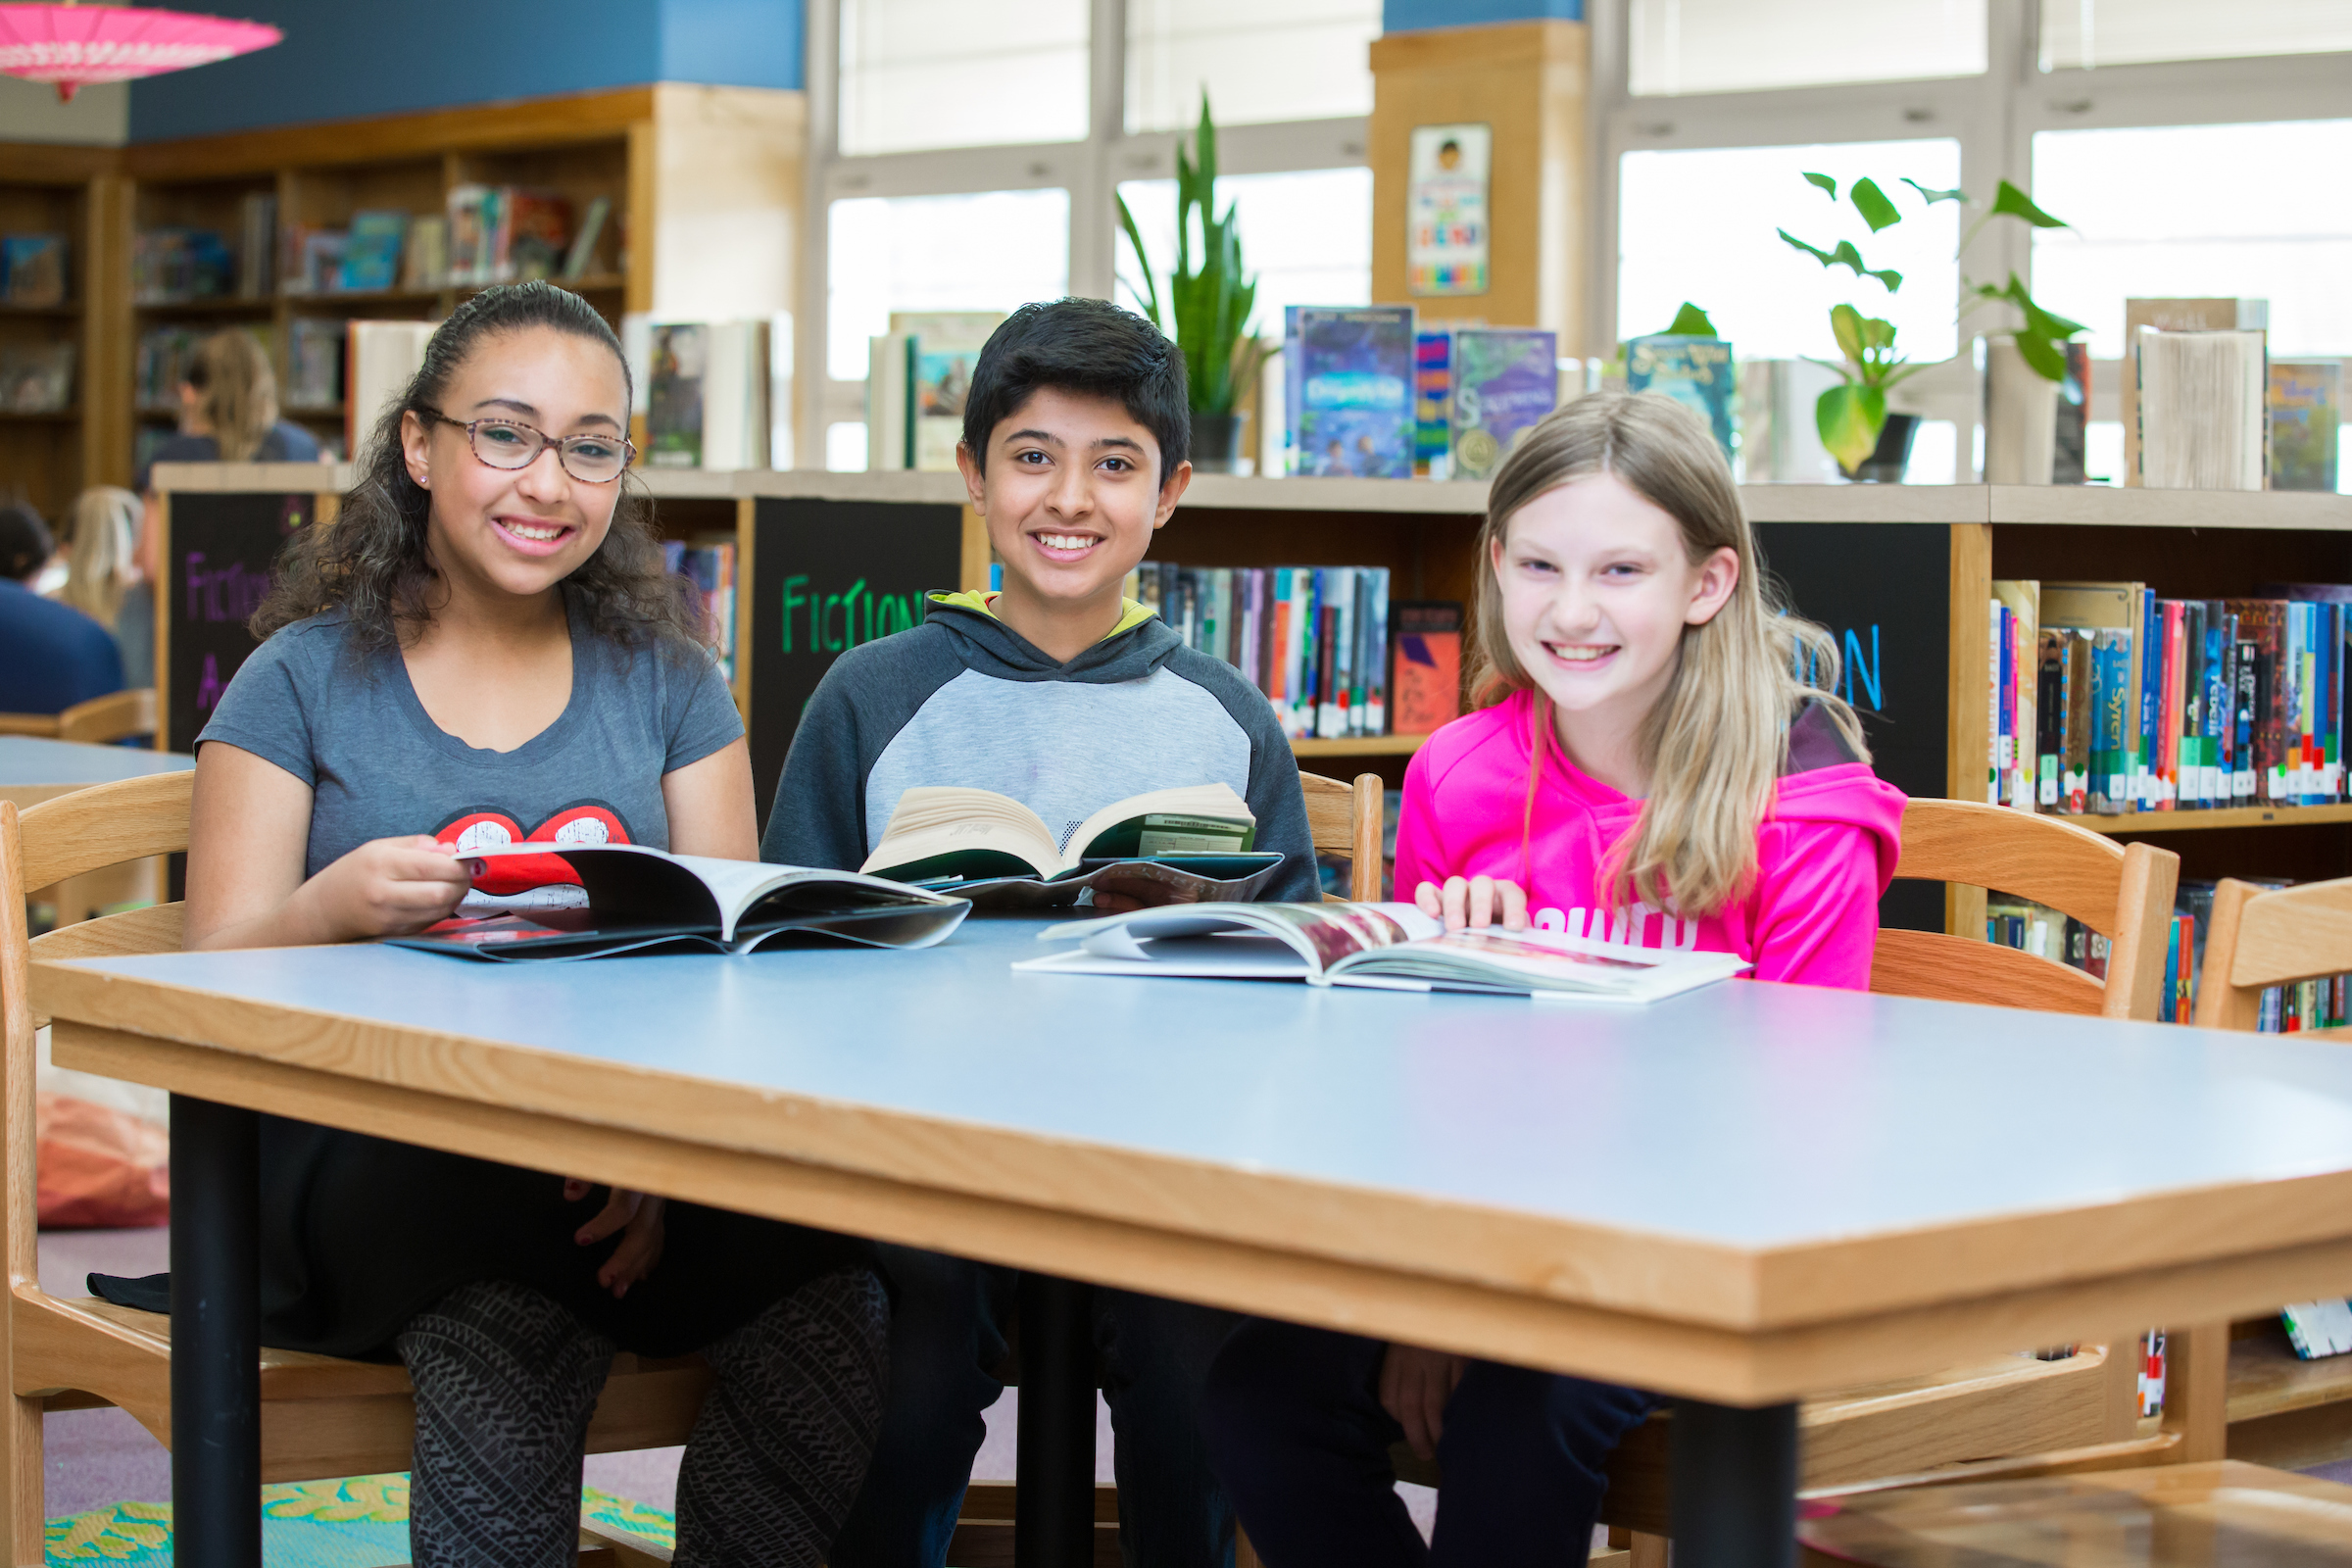 Merrill Middle School students smile with books in the library